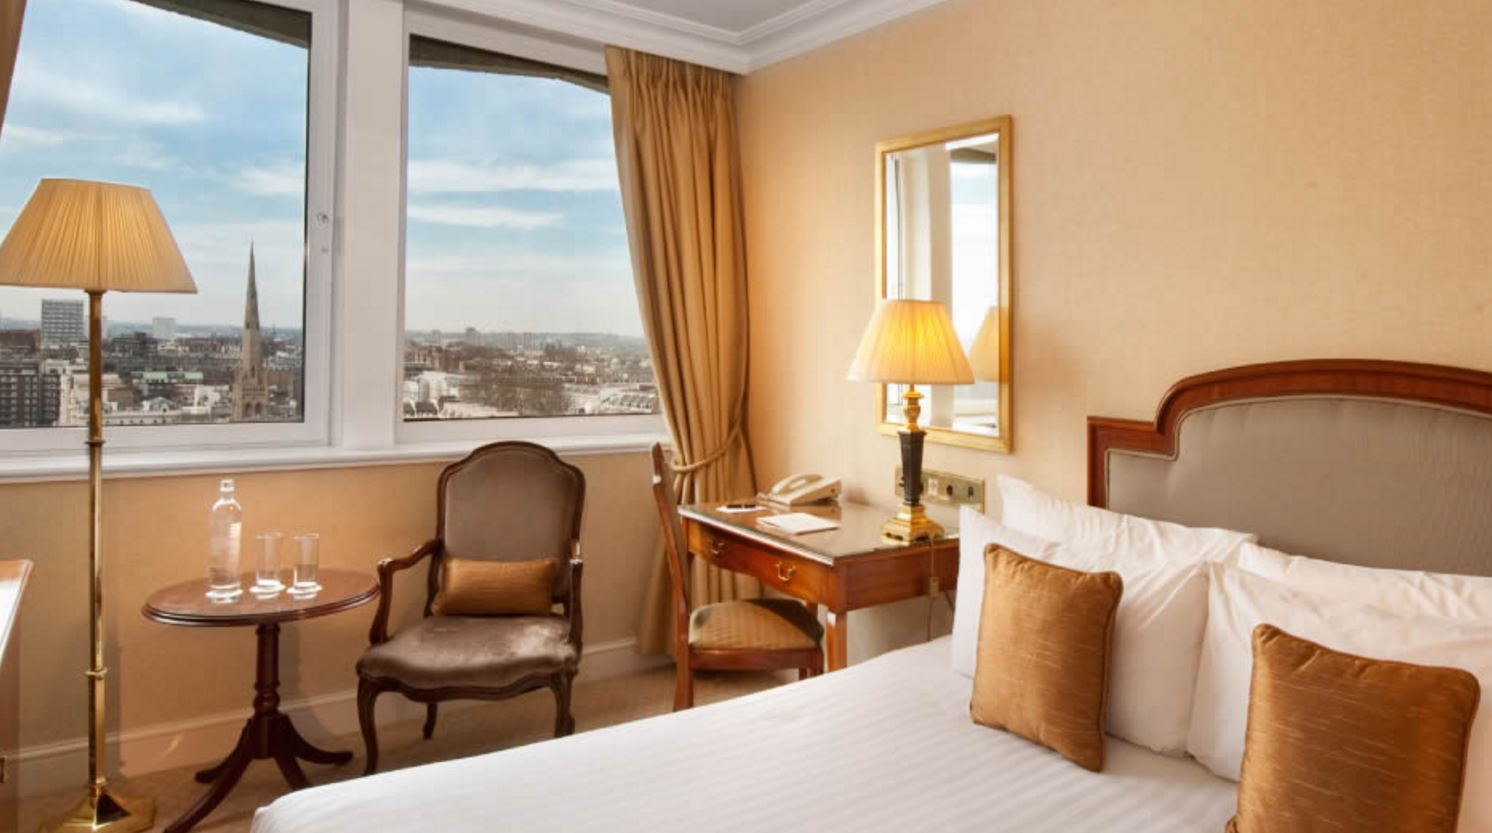 Hotel Lancaster London enkelrum(20-23 apr)